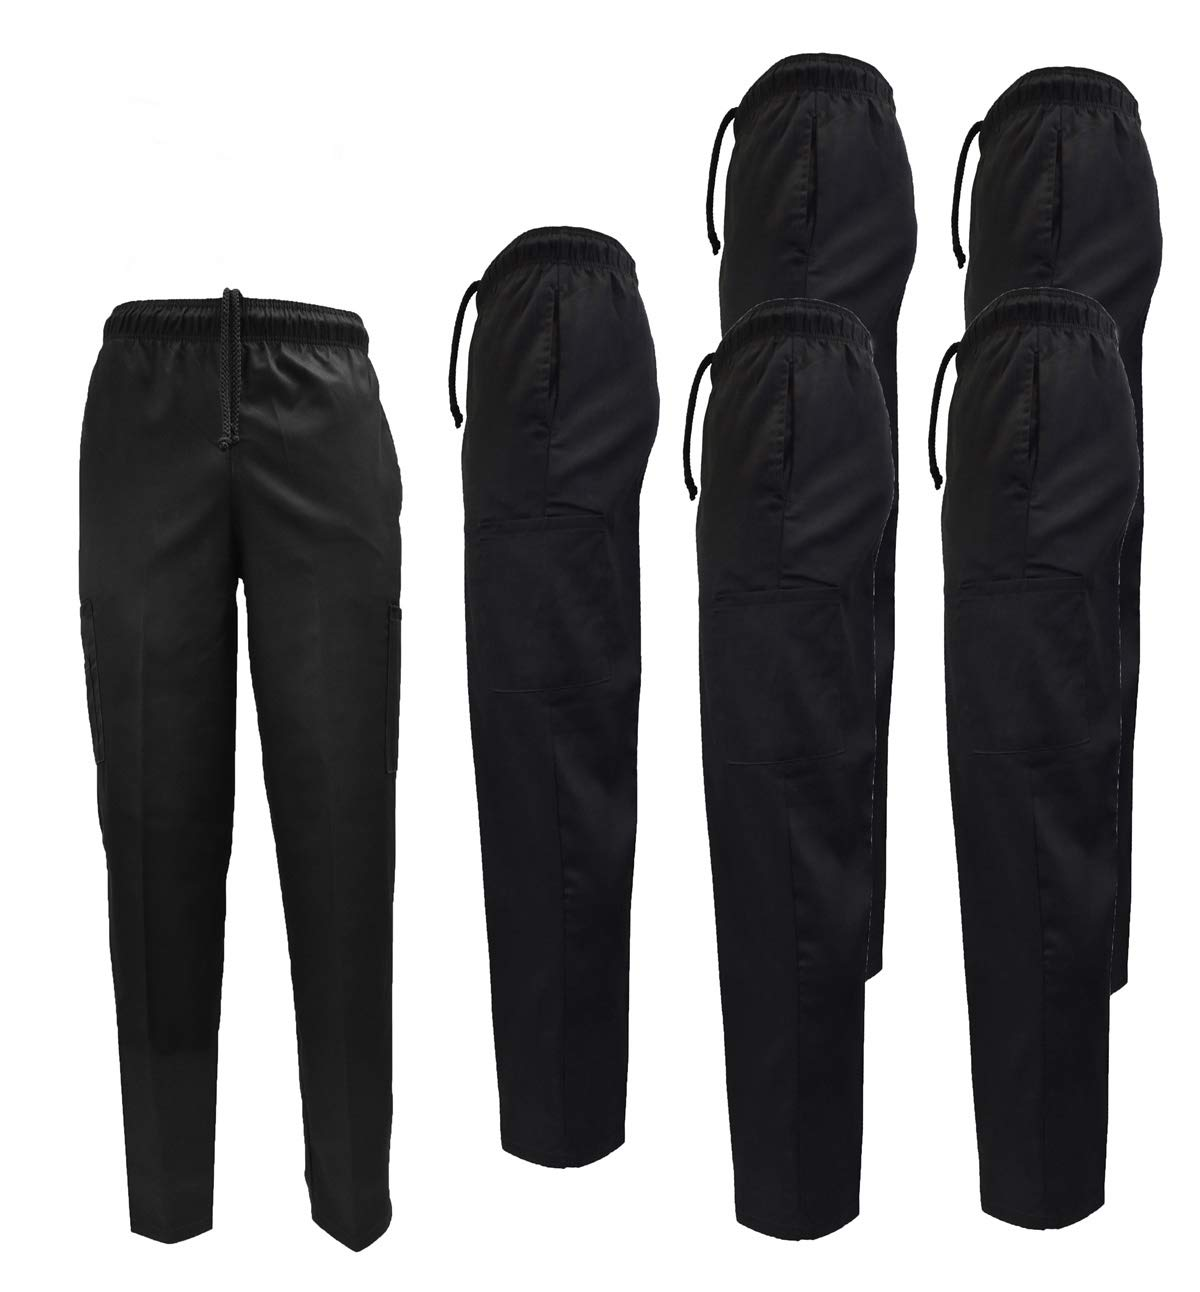 Natural Uniforms Classic Chef Pants (XXX-Large, Black Pack of 6) by Natural Uniforms